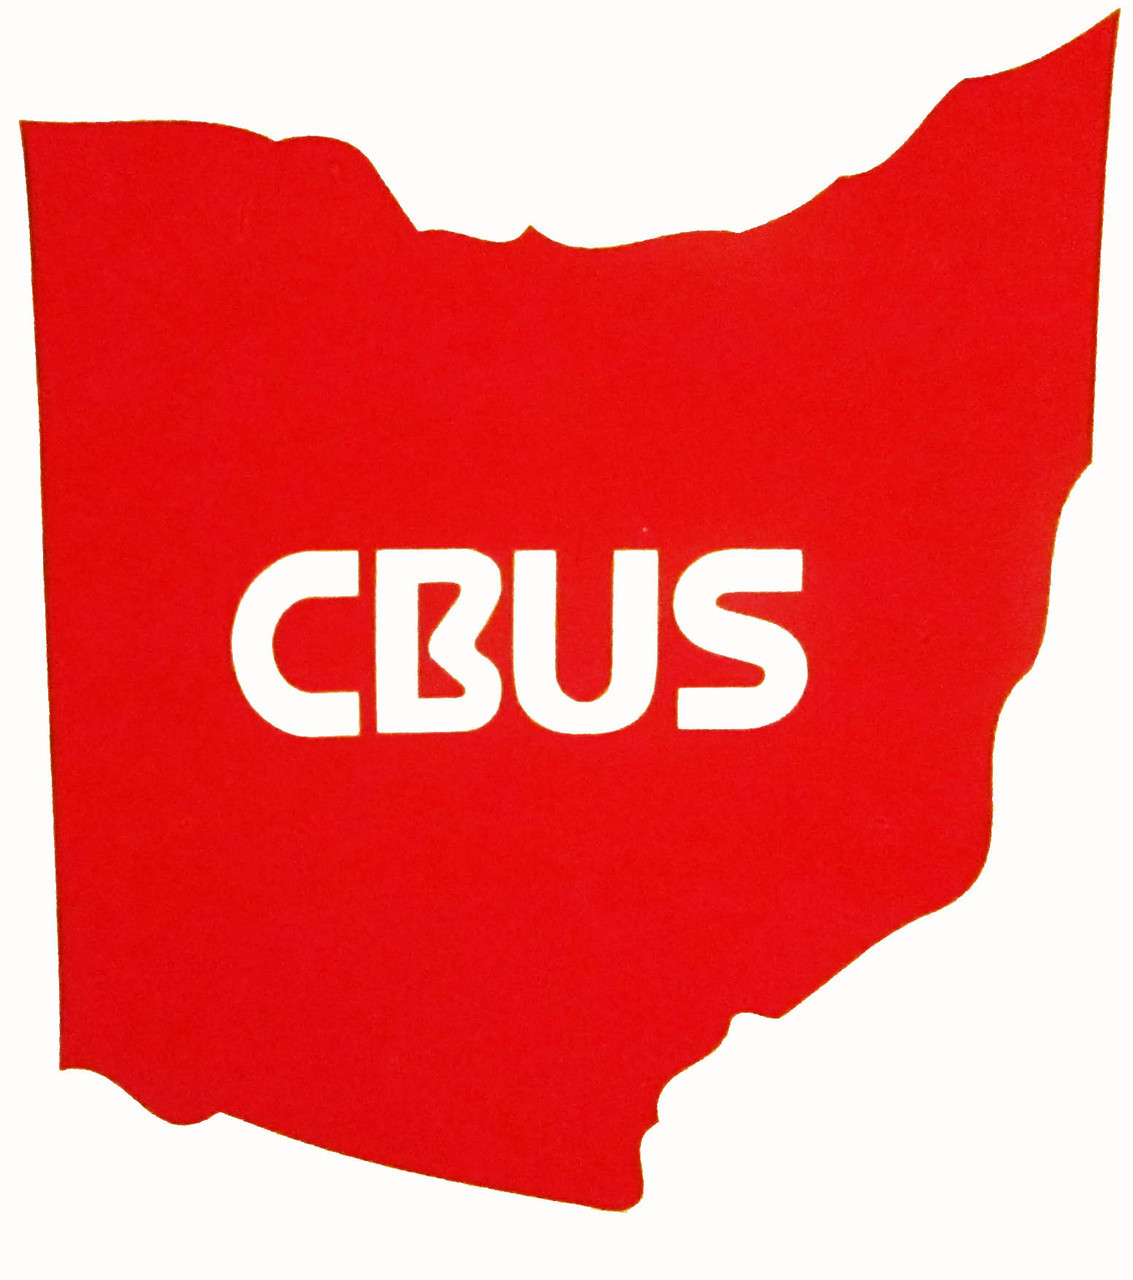 CBUS Ohio Bumper Sticker